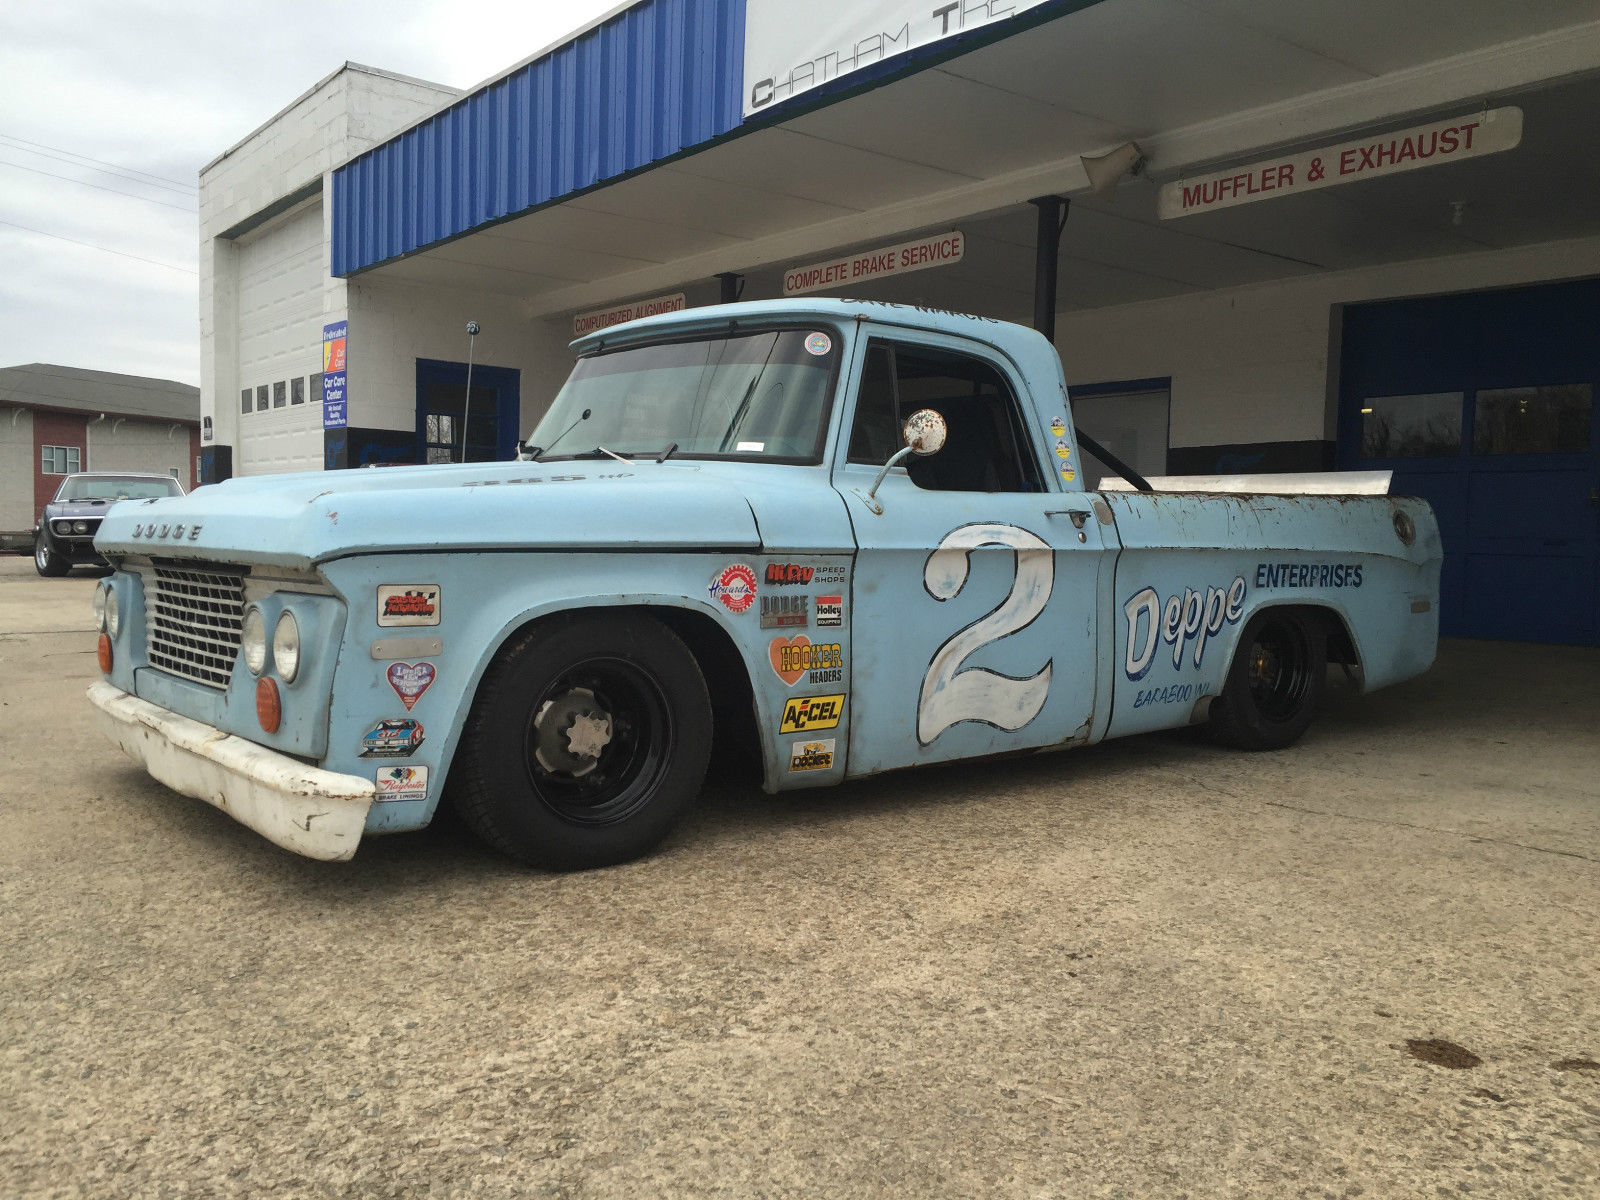 This 1970 Dodge D100 May Be The Neatest Pickup Truck We've Seen – Awesome In Every Way